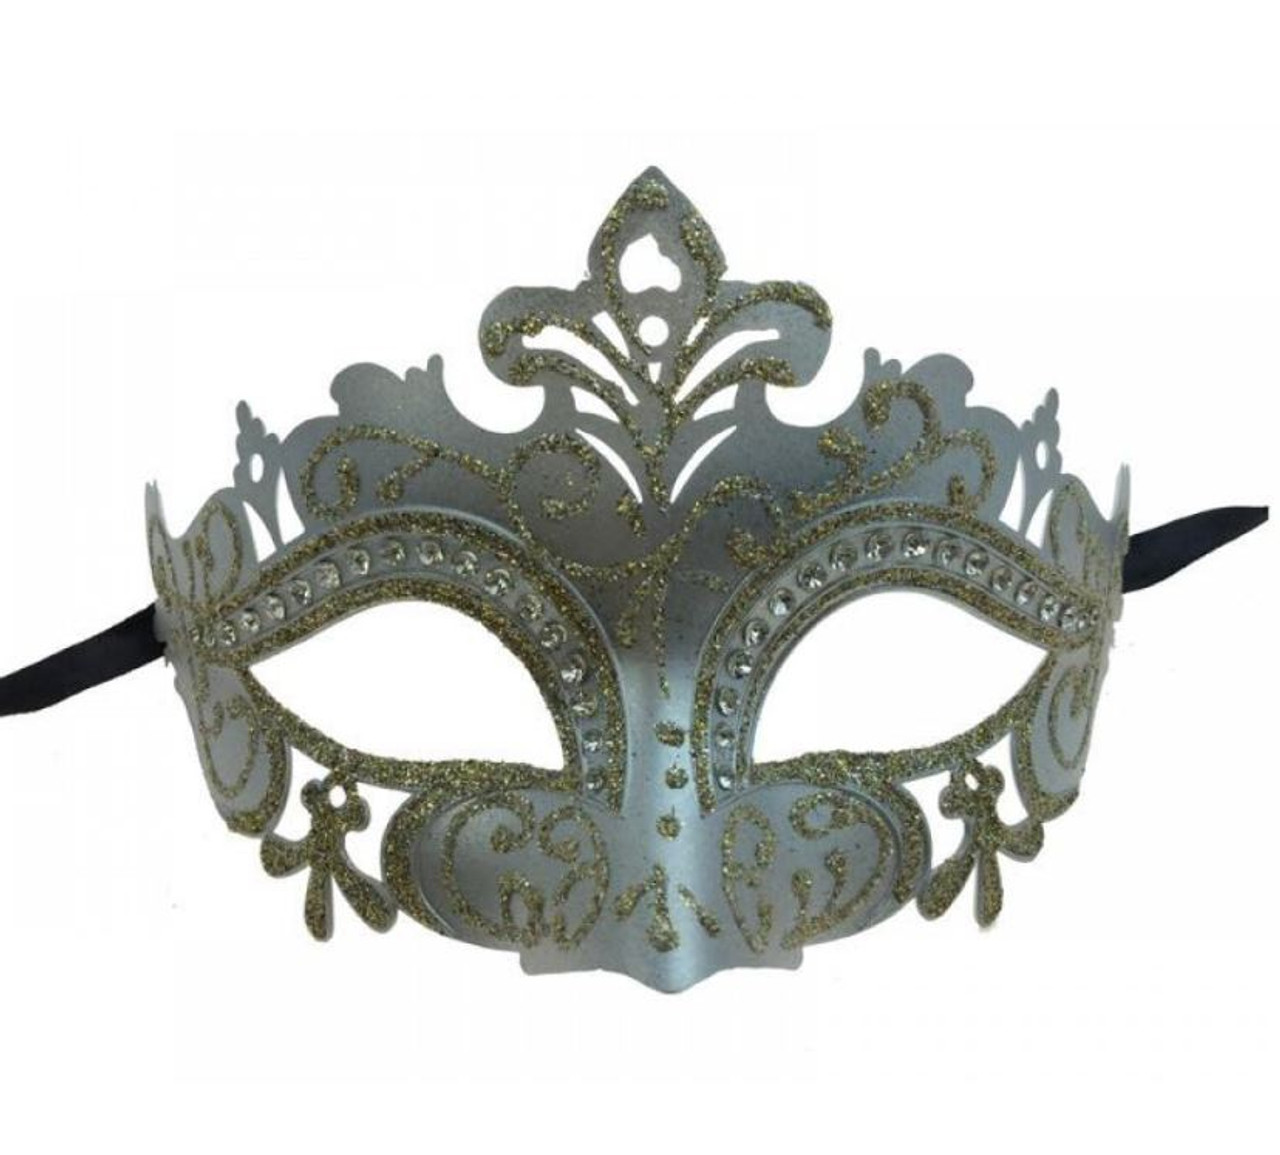 Silver Masquerade Mask Couple Halloween Costume 50 Shades of Grey Burlesque Prom